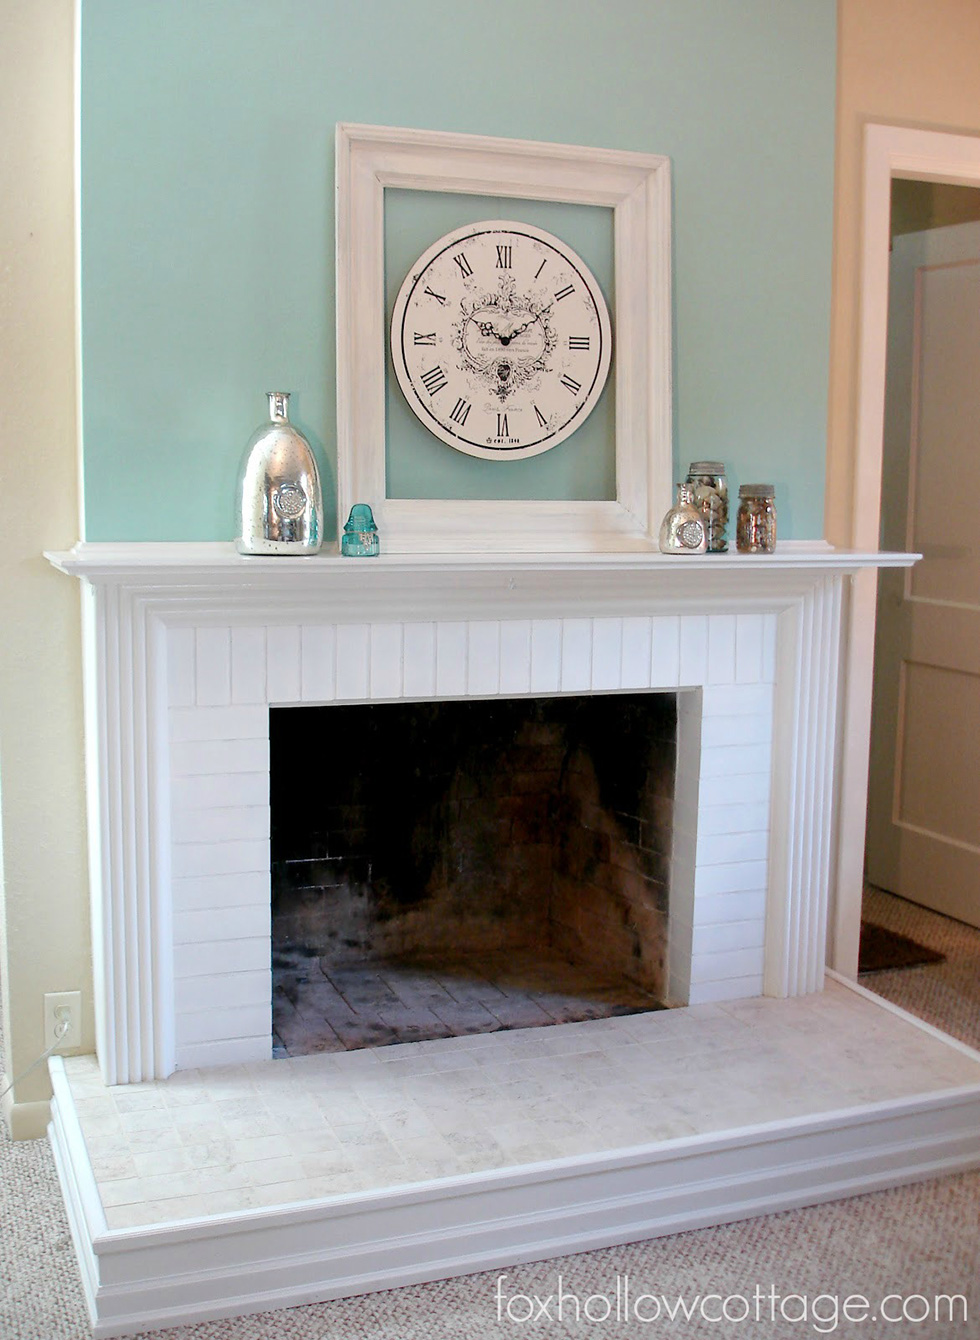 install room diy to week how fireplace tile one cement challenge